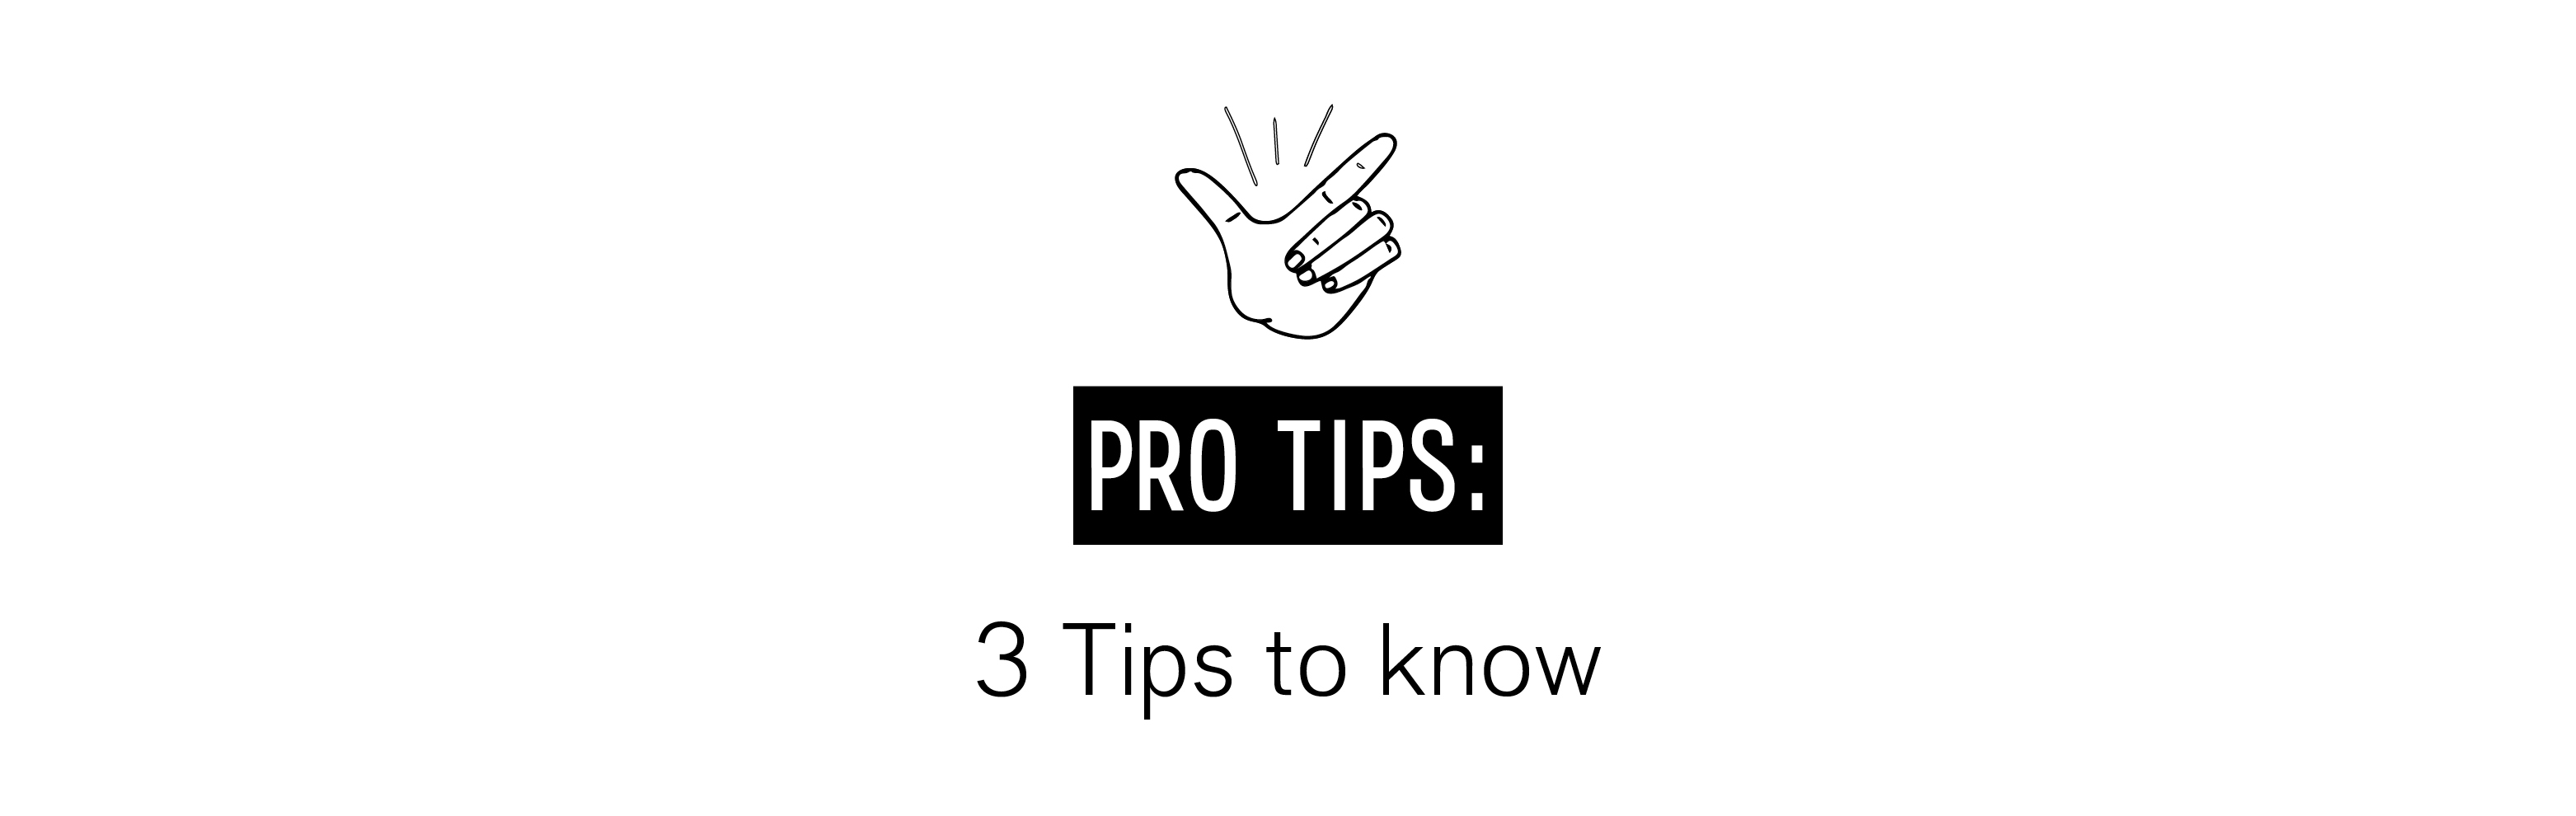 pro-tips-three-tips-to-know